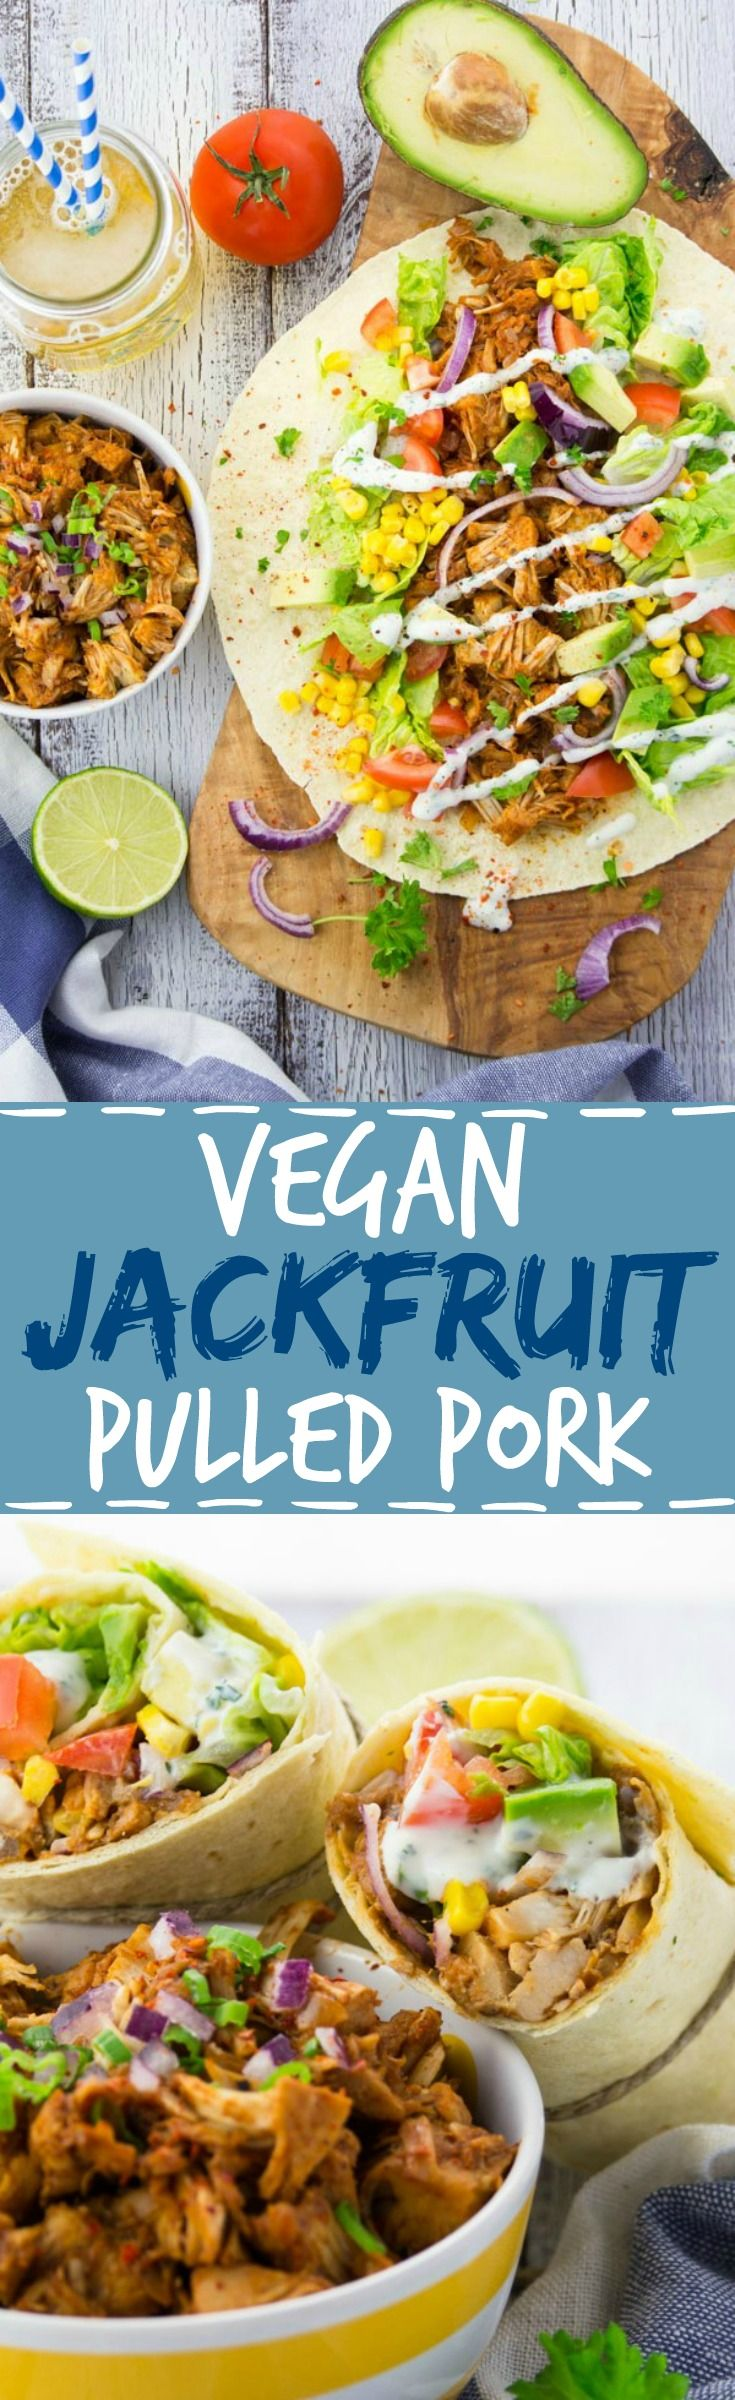 This jackfruit vegan pulled pork wrap with avocado is insanely delicious and comes together in only half an hour.